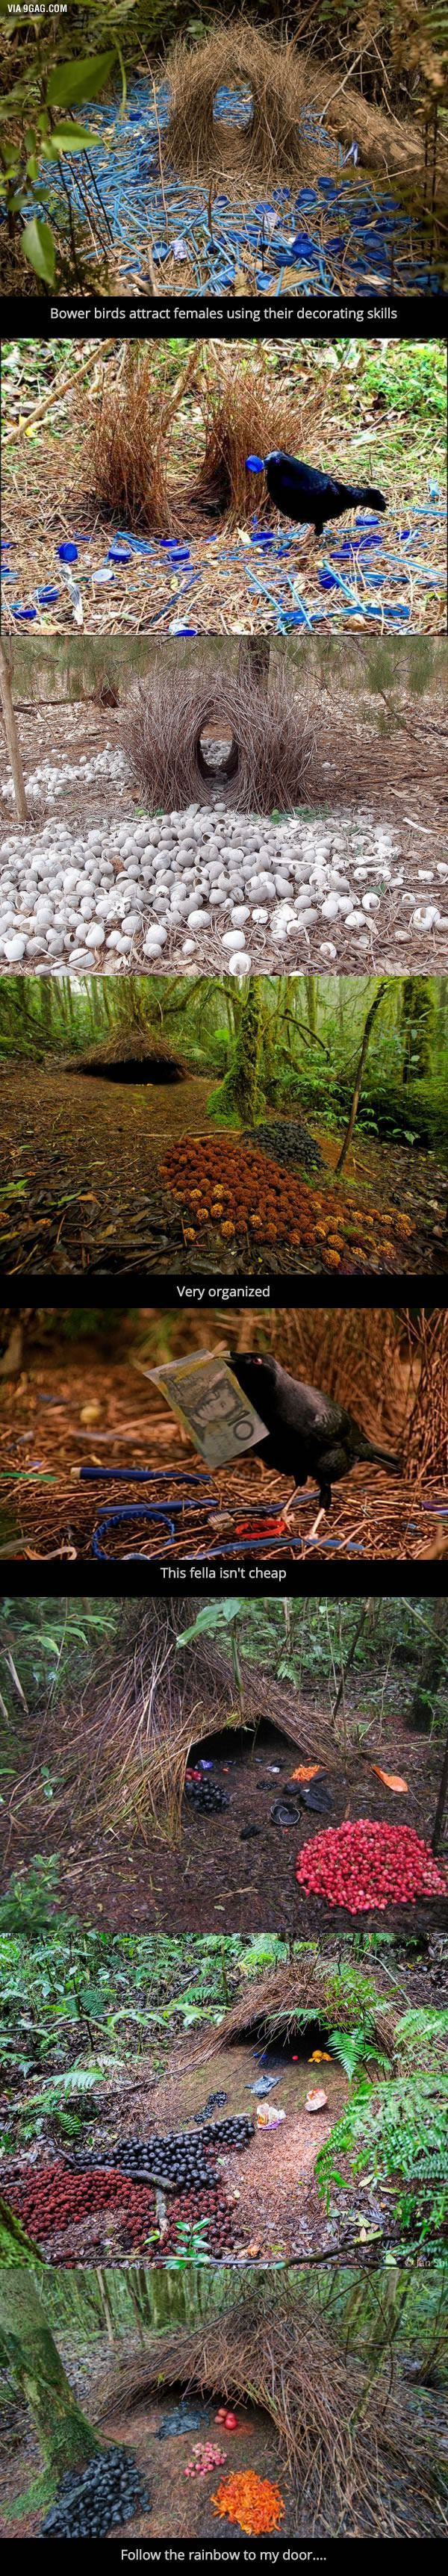 Bower Birds are Awesome – #awesome #Birds #Bower #pics